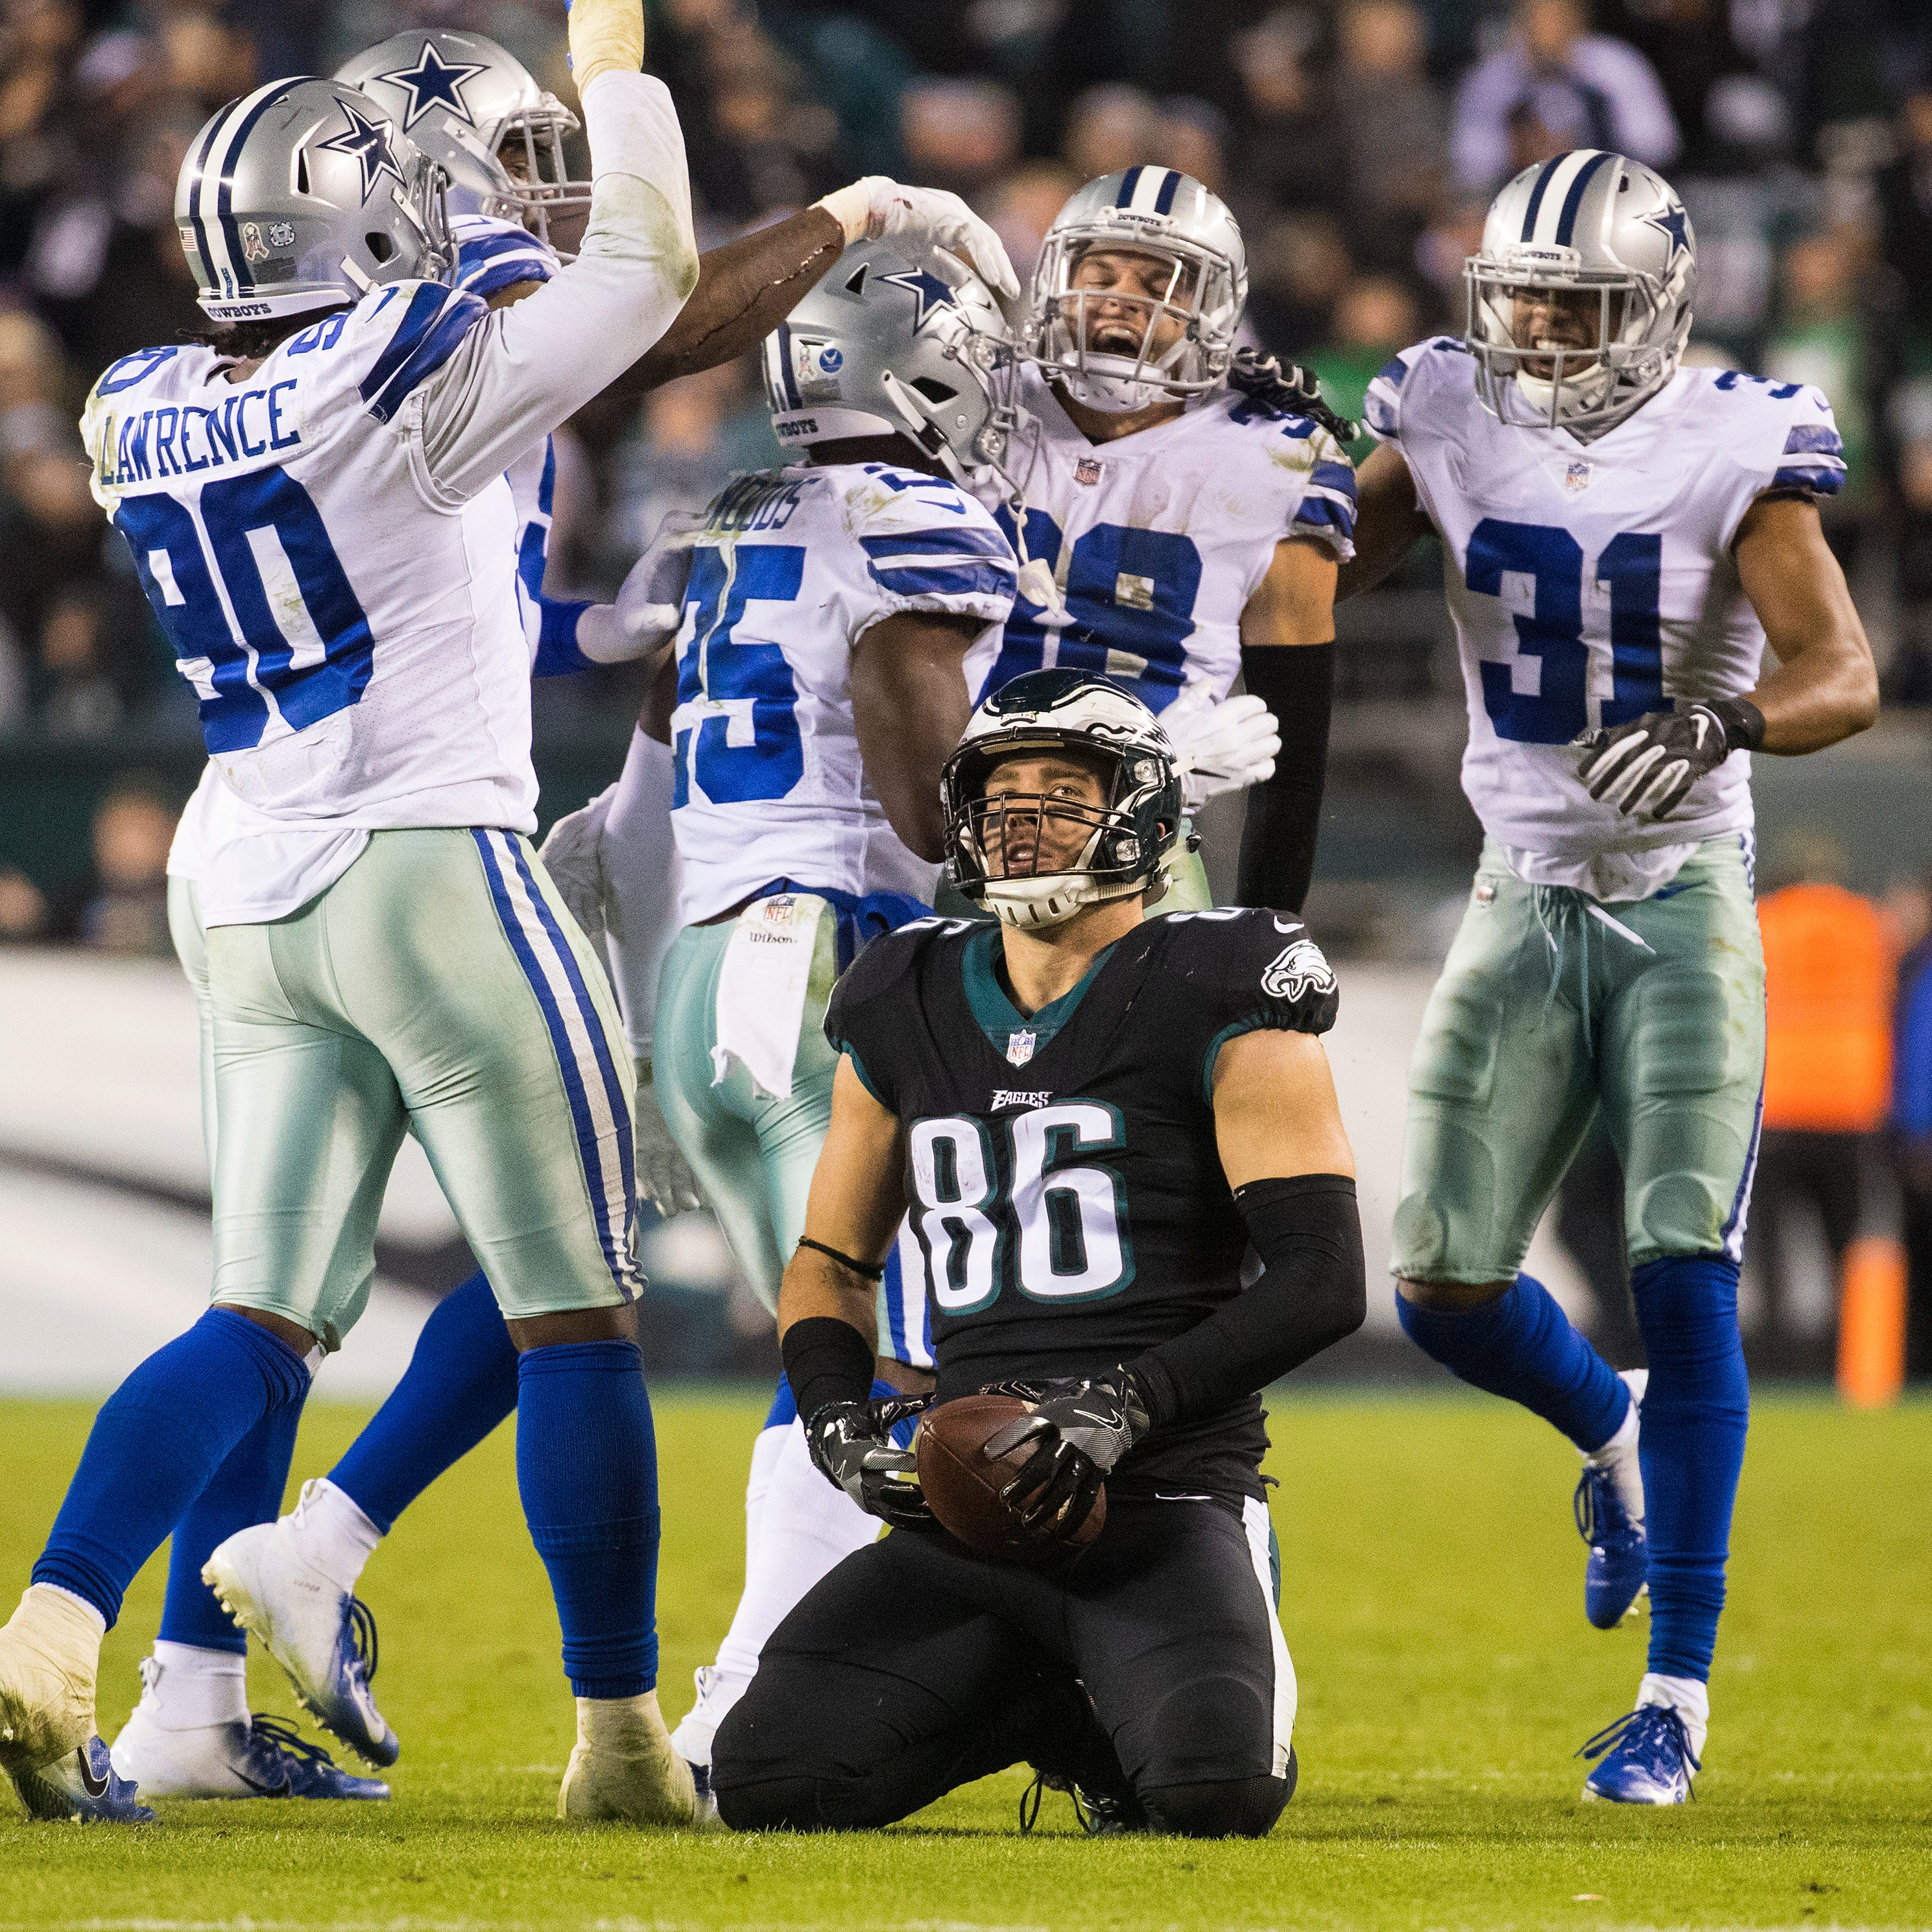 Eagles' season falling apart after loss to Cowboys; 'This one hurt'